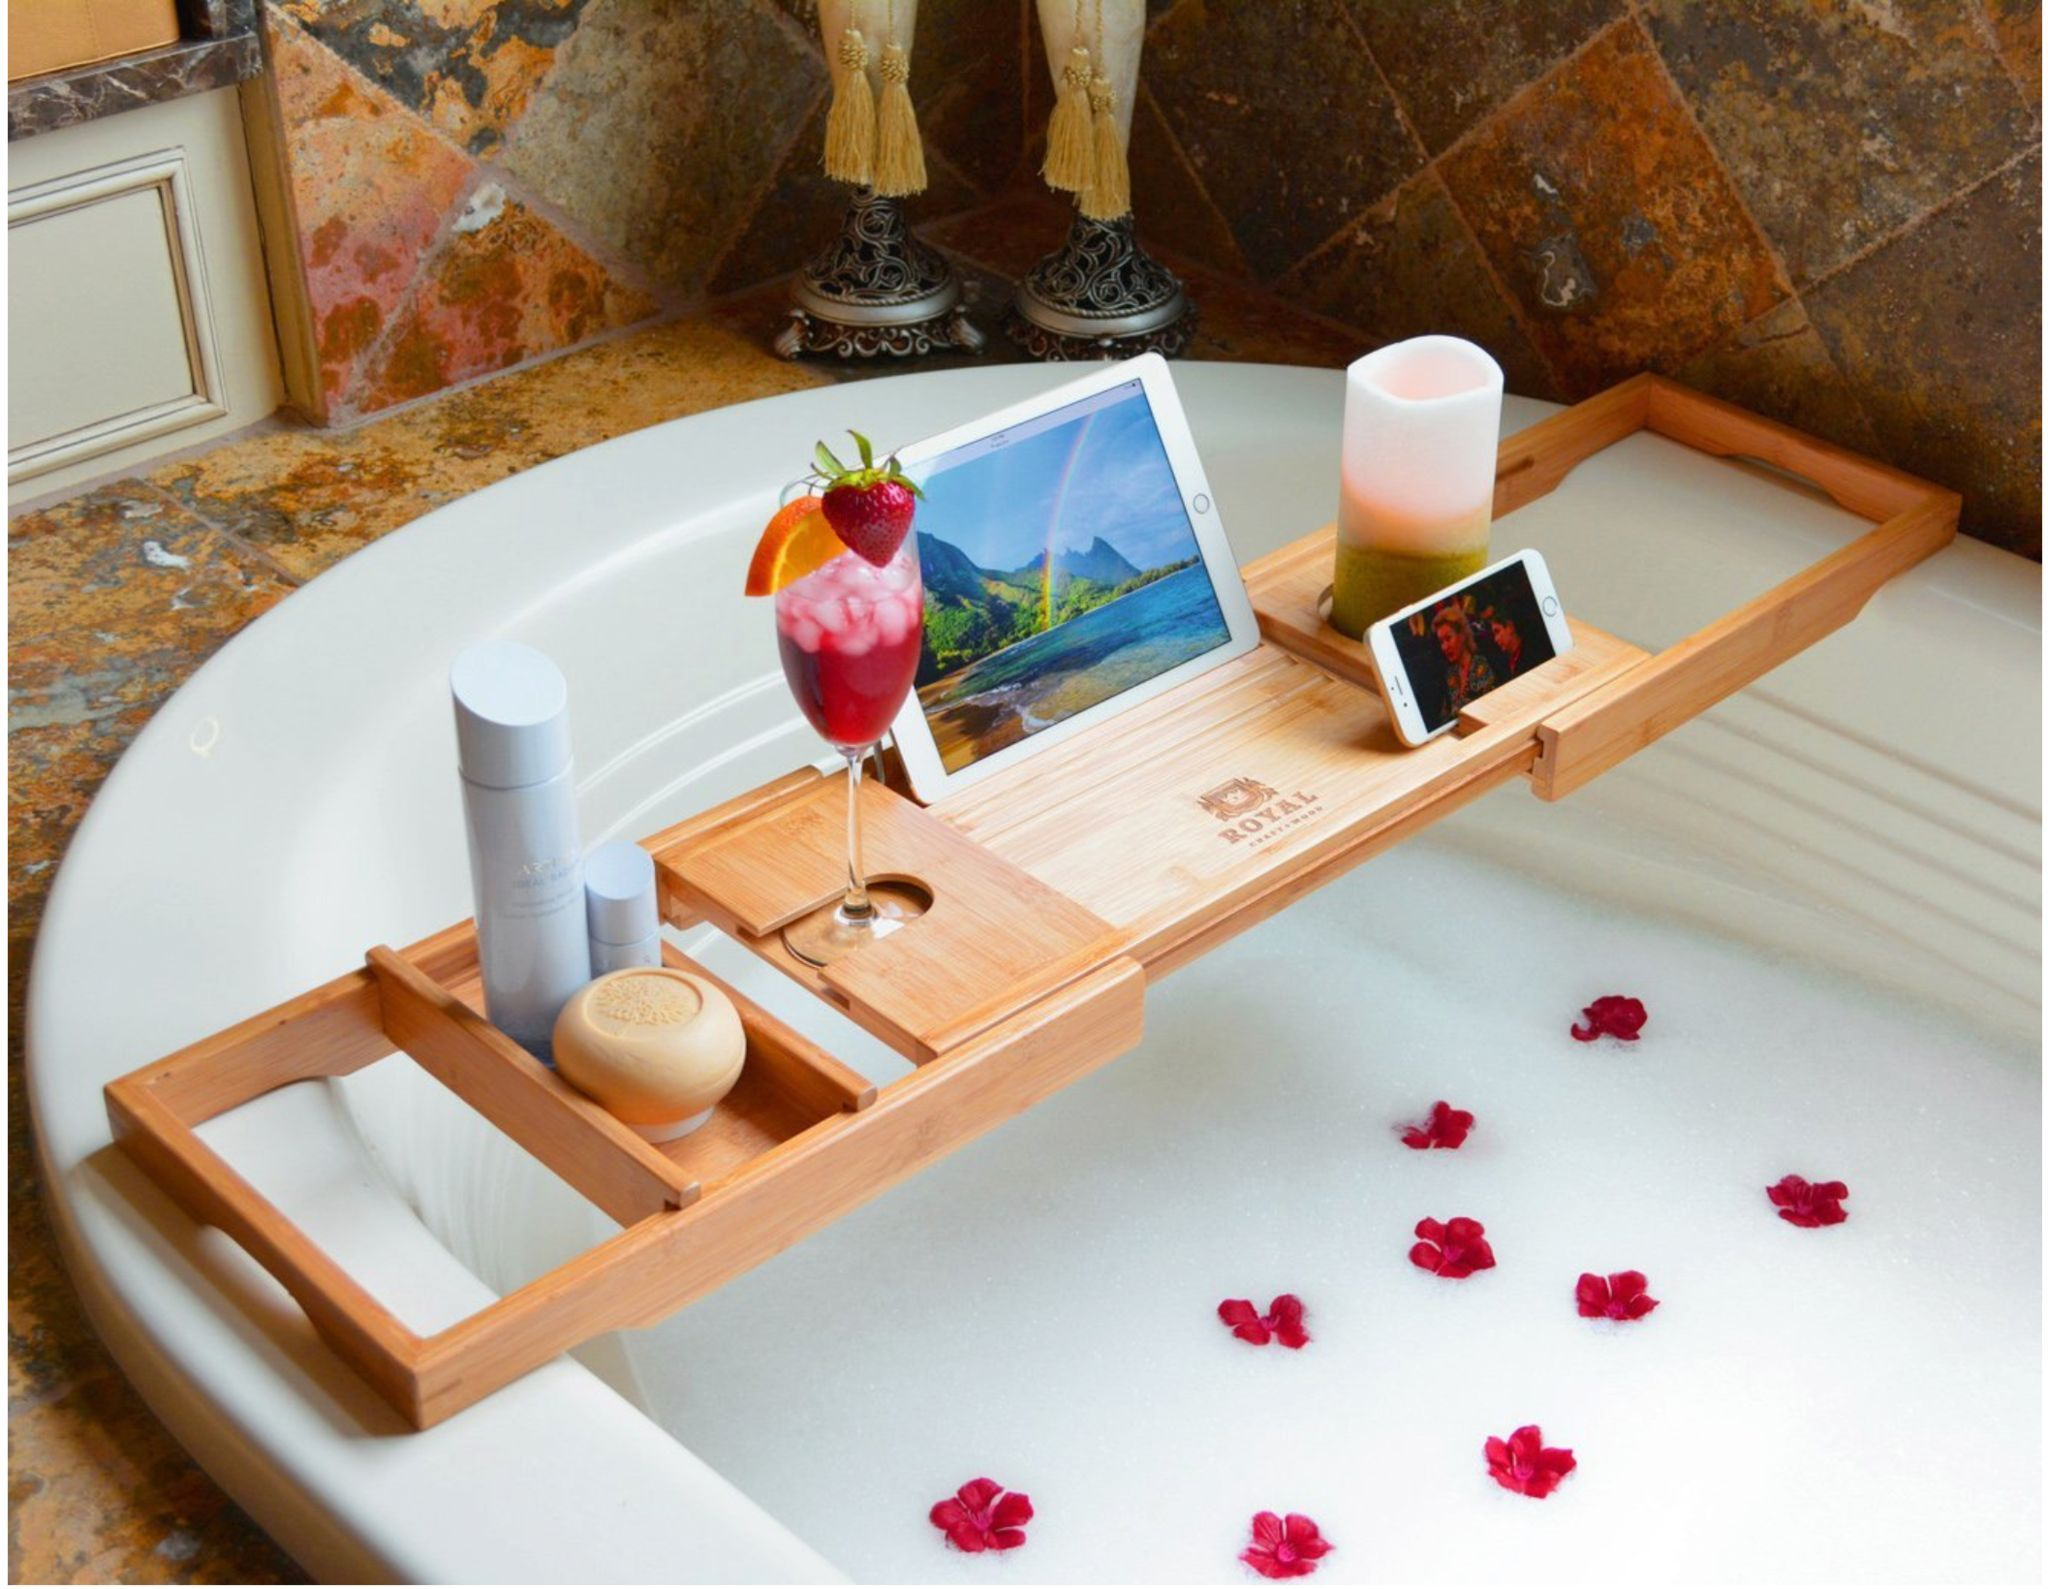 Newest Design Bathtub Caddy Tray With The Biggest Extendable Sides Up To 43  Inches Soap Holder Is Free   The Best, Cost Effective Way To Transform Your  ...